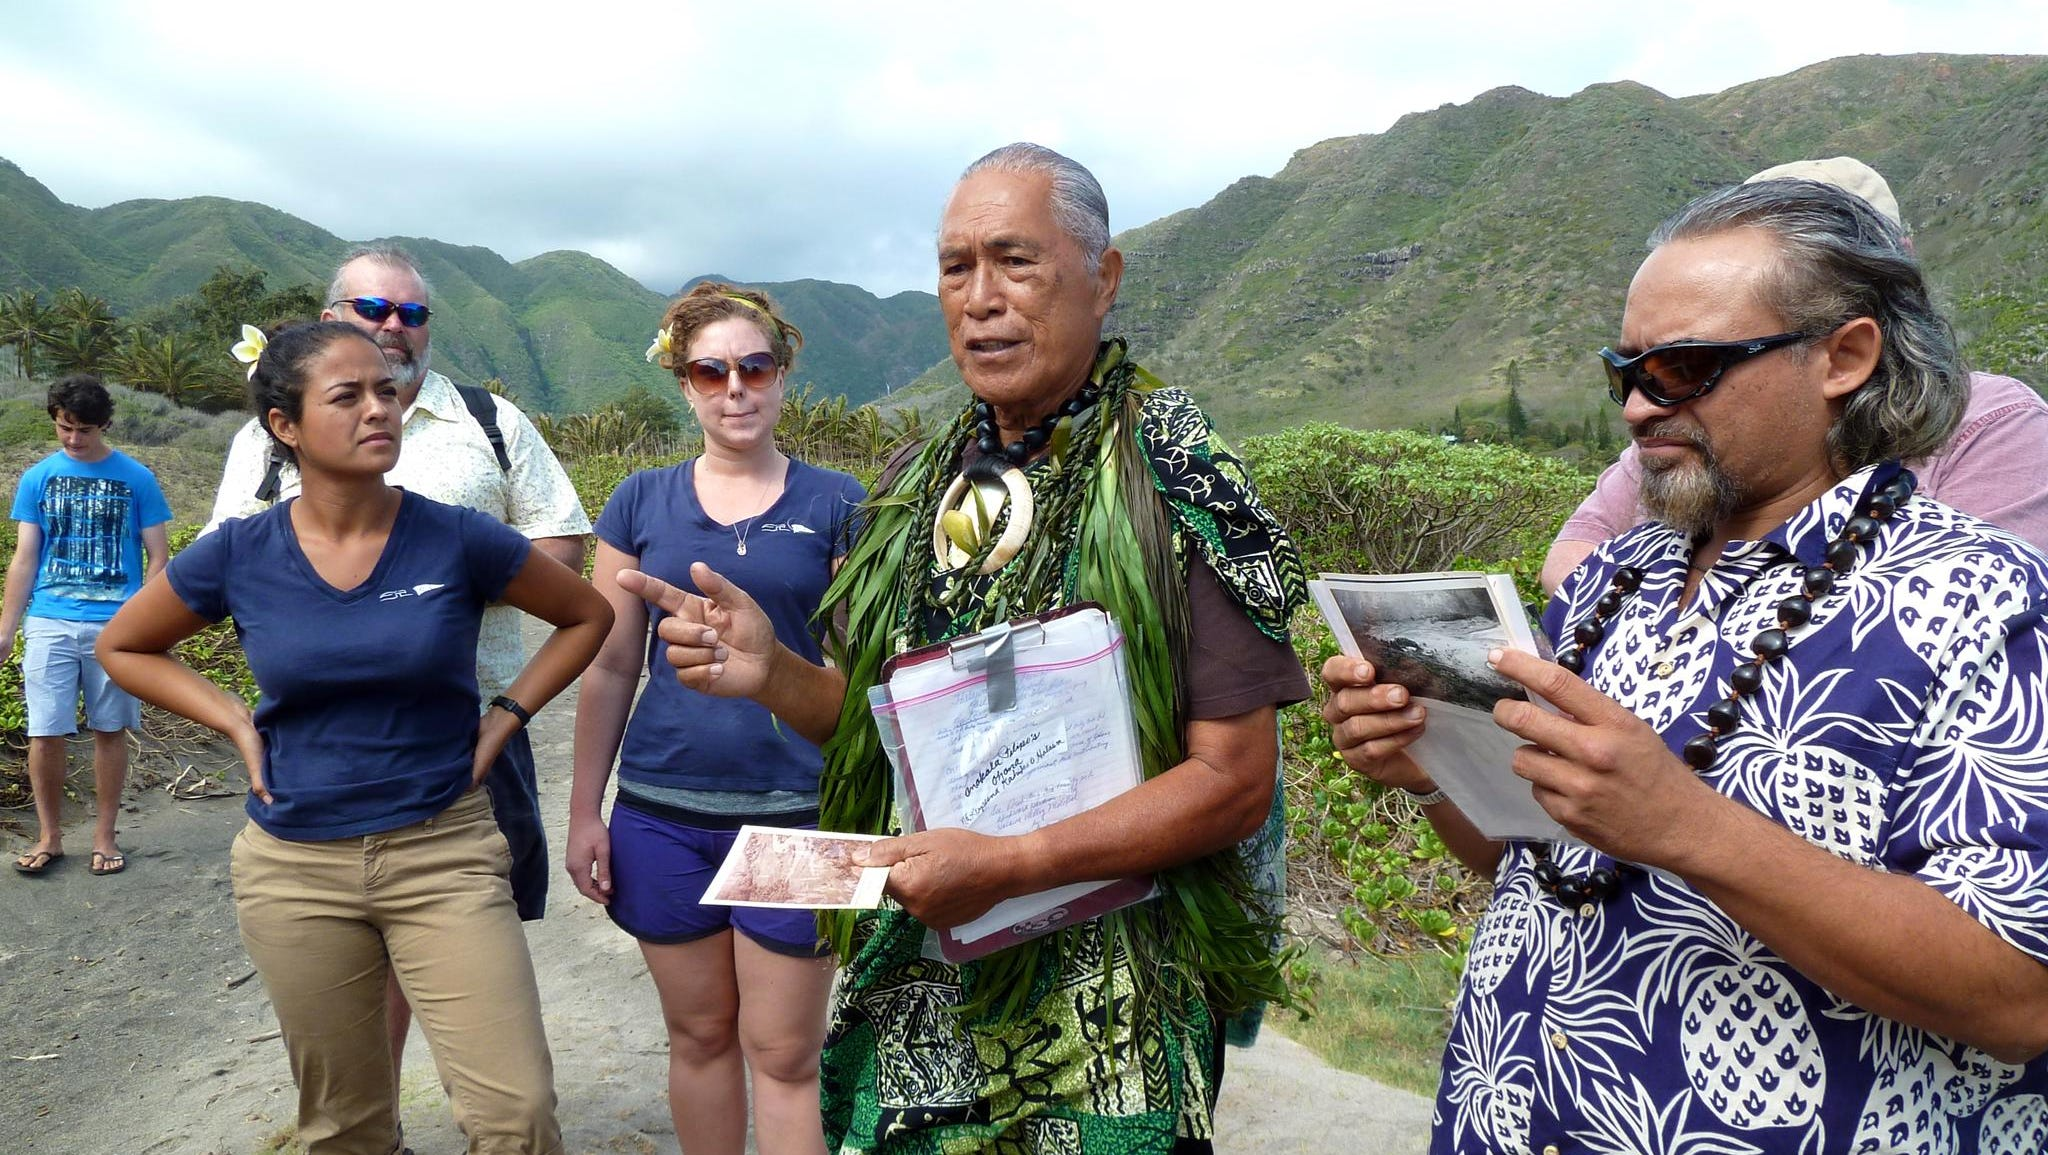 Un-Cruise Adventures works closely with land-based entities to provide unique adventures such as a visit to Molokai'i's Halawa Valley where the local elder Ana Kala Pilipo Solitaro shares the region's history and grants access for a hike to a secluded waterfall.